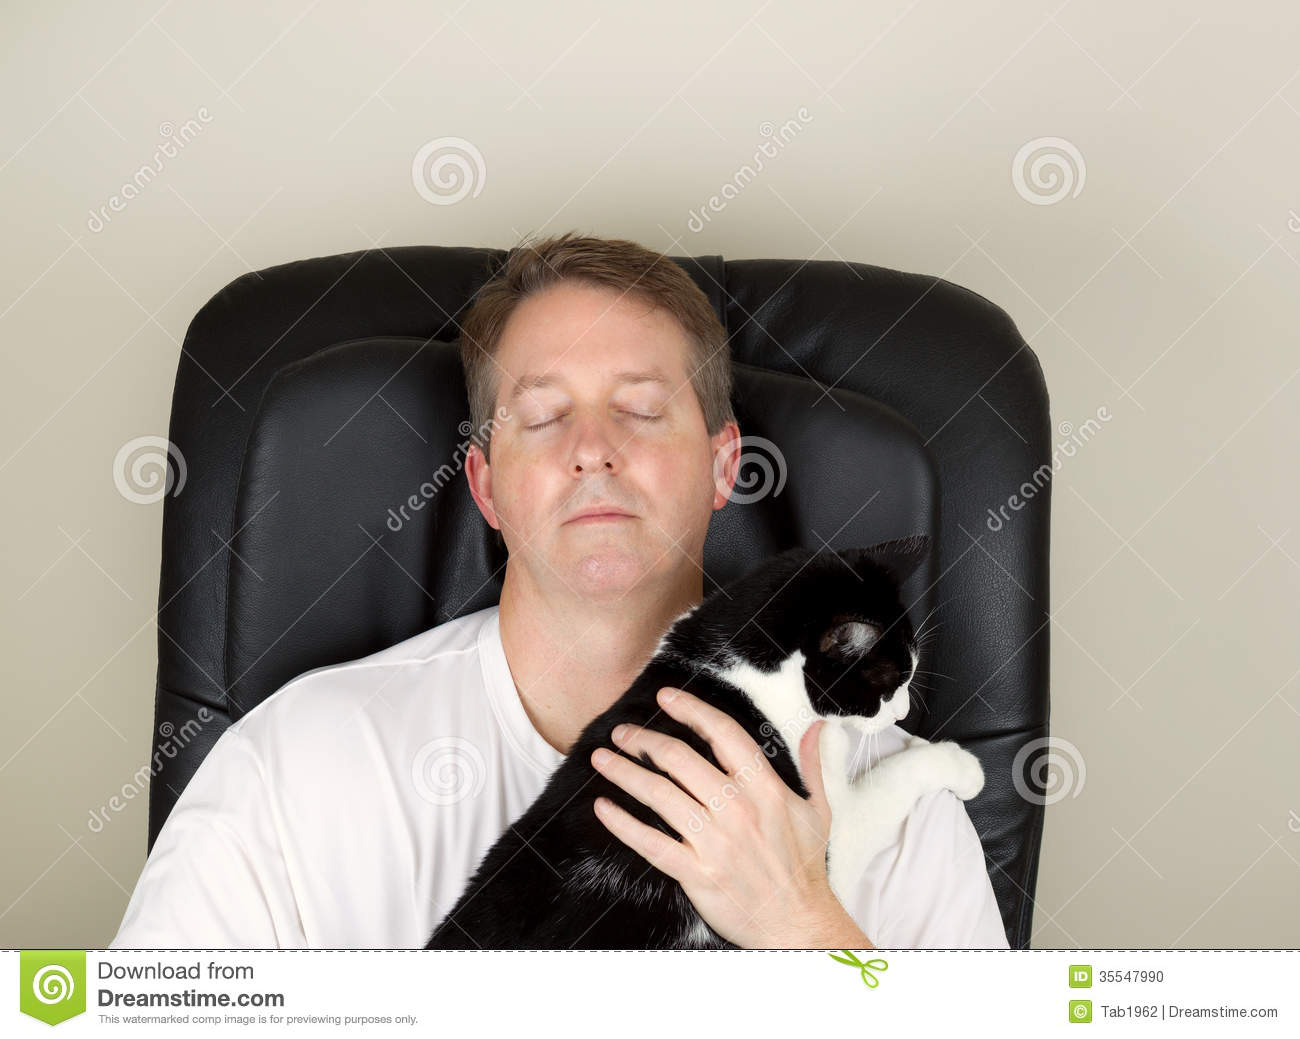 Photo of mature man wearing white shirt while relaxing in massage chair,  eyes closed, with hands holding black and white family cat